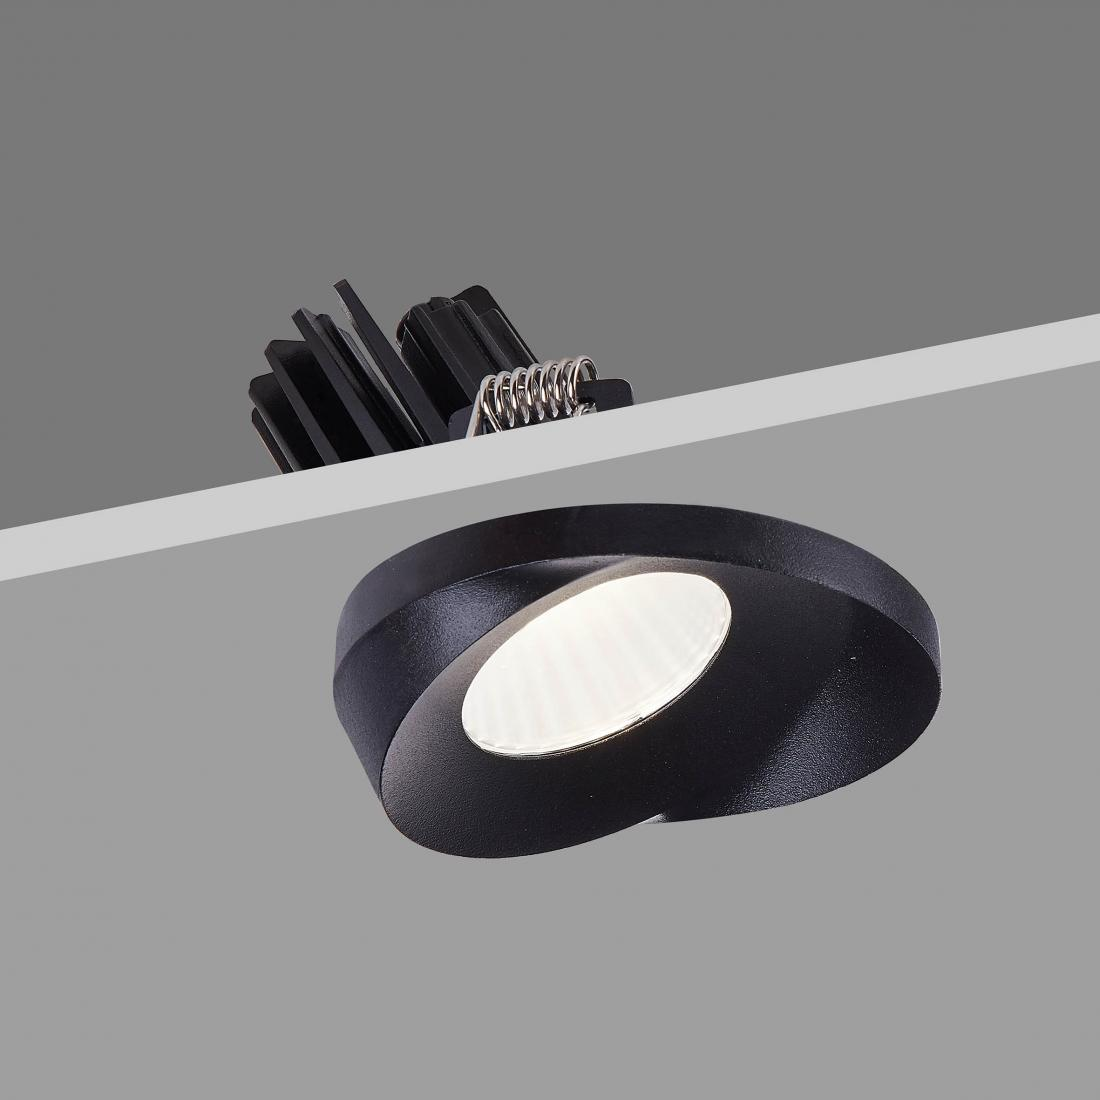 Black high CRI downlight